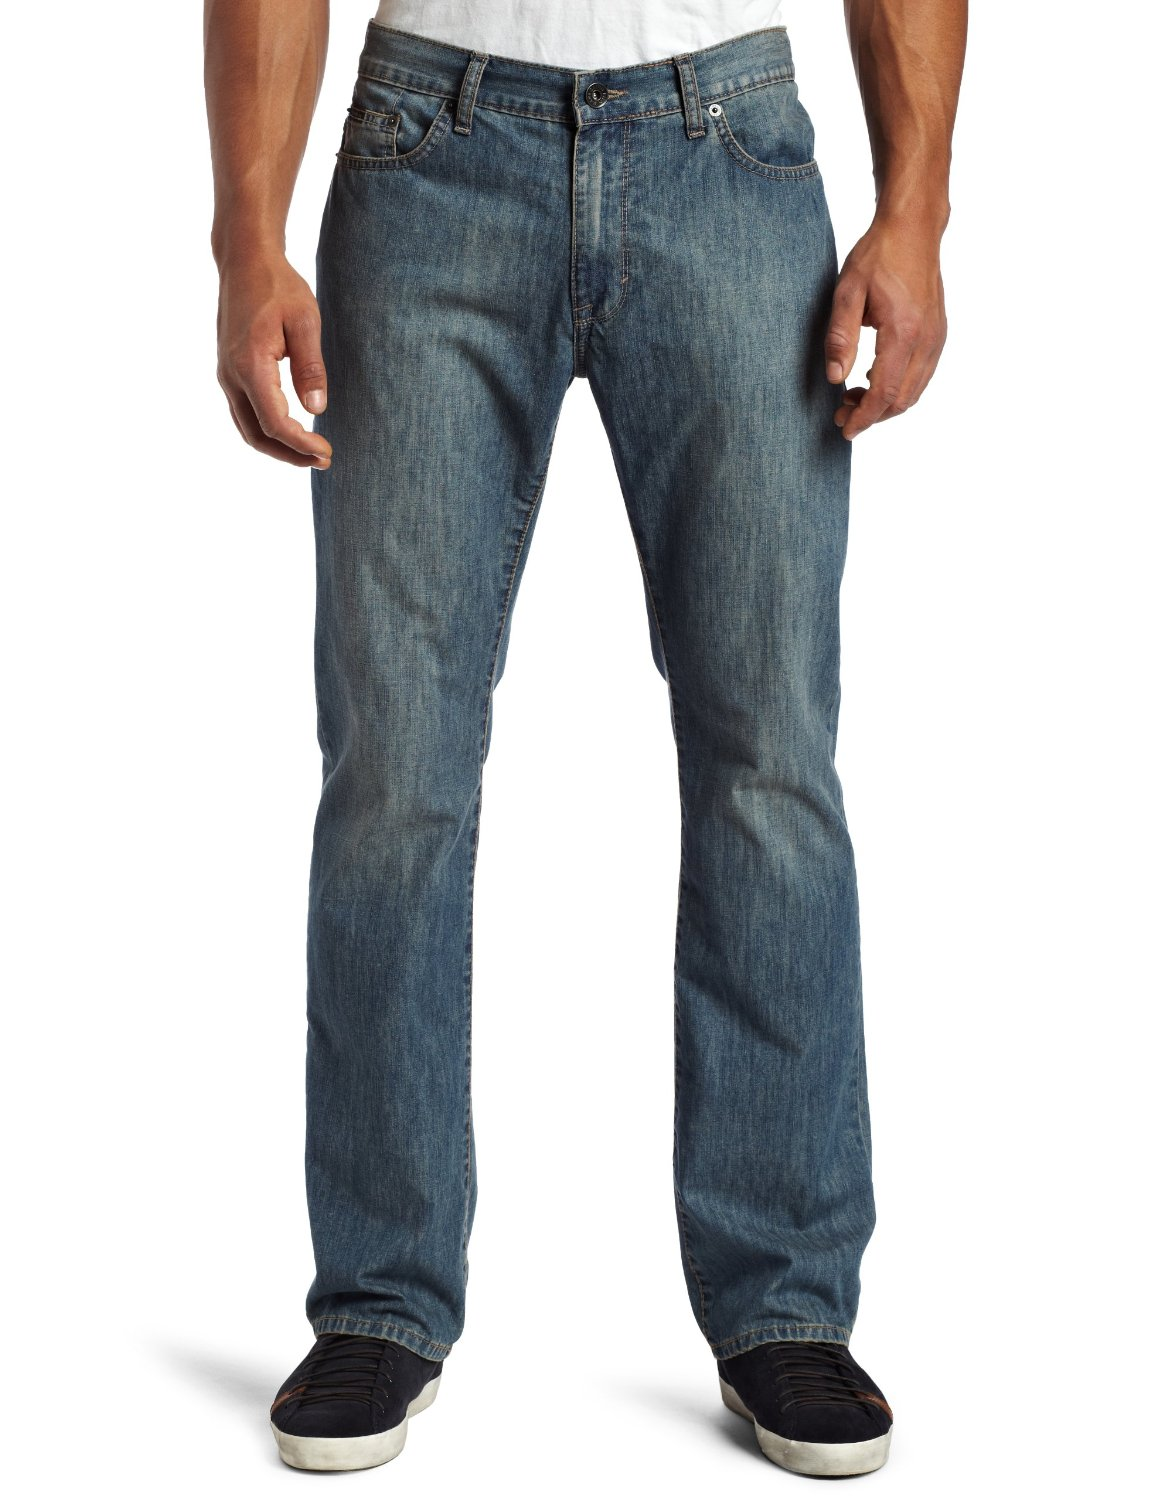 Imported Quality Jeans and T-Shirt for supply in Shop cheap | ClickBD large image 0